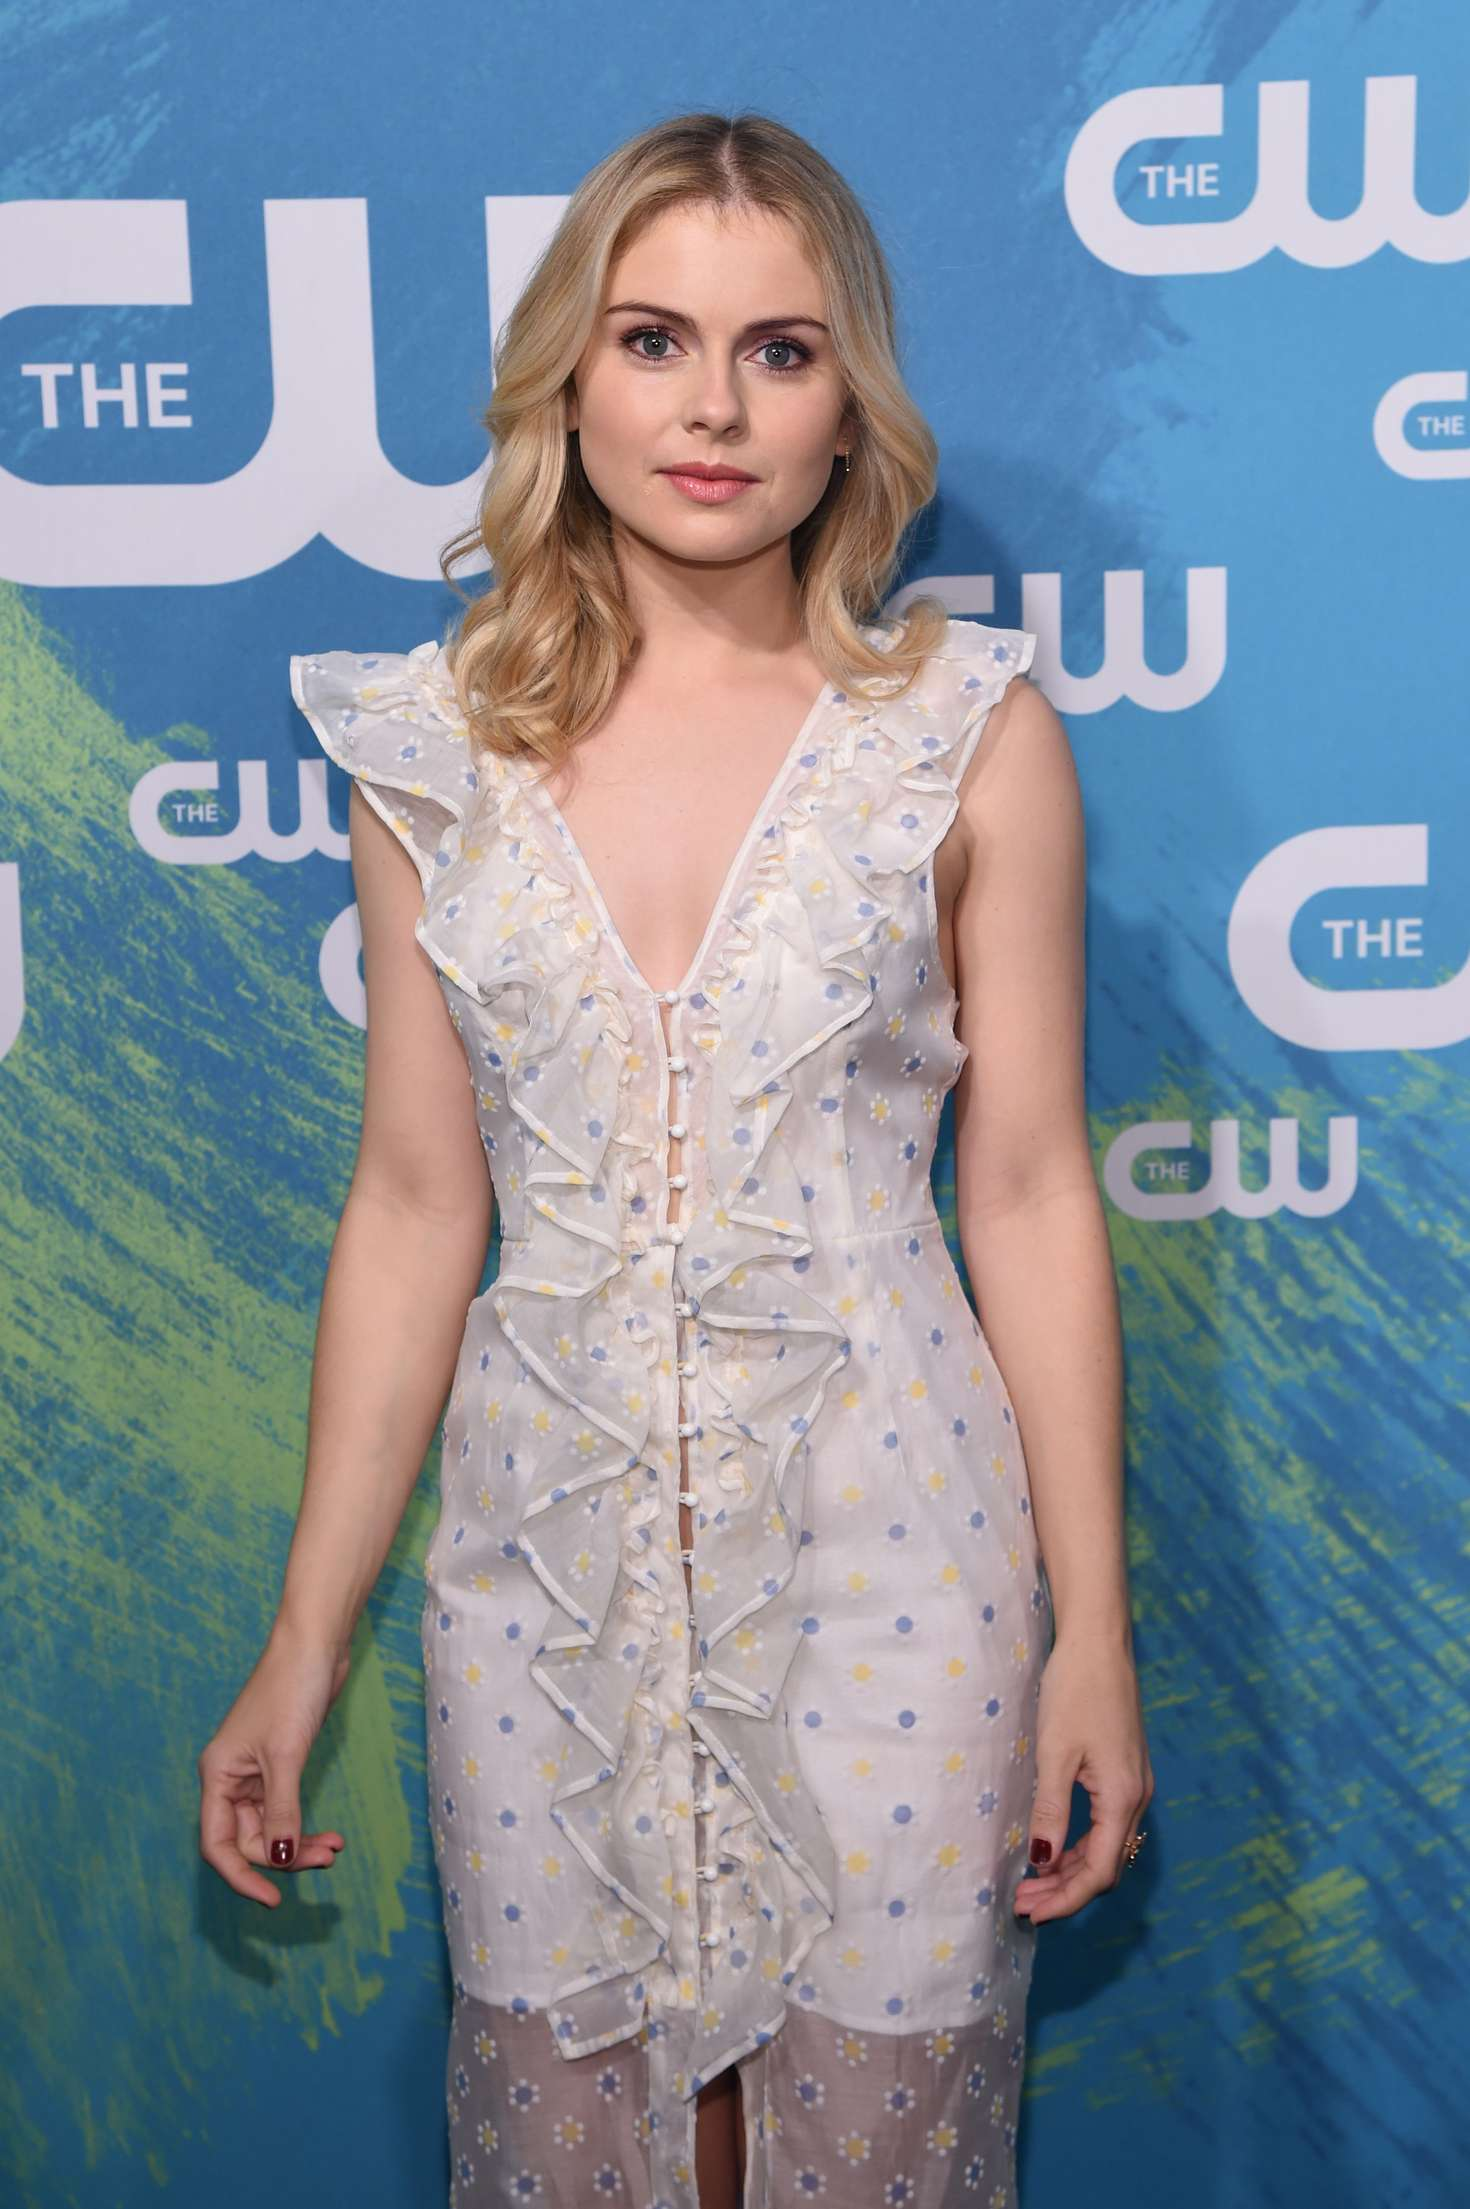 Rose McIver - The CW Upfront Presentation 2016 in New York